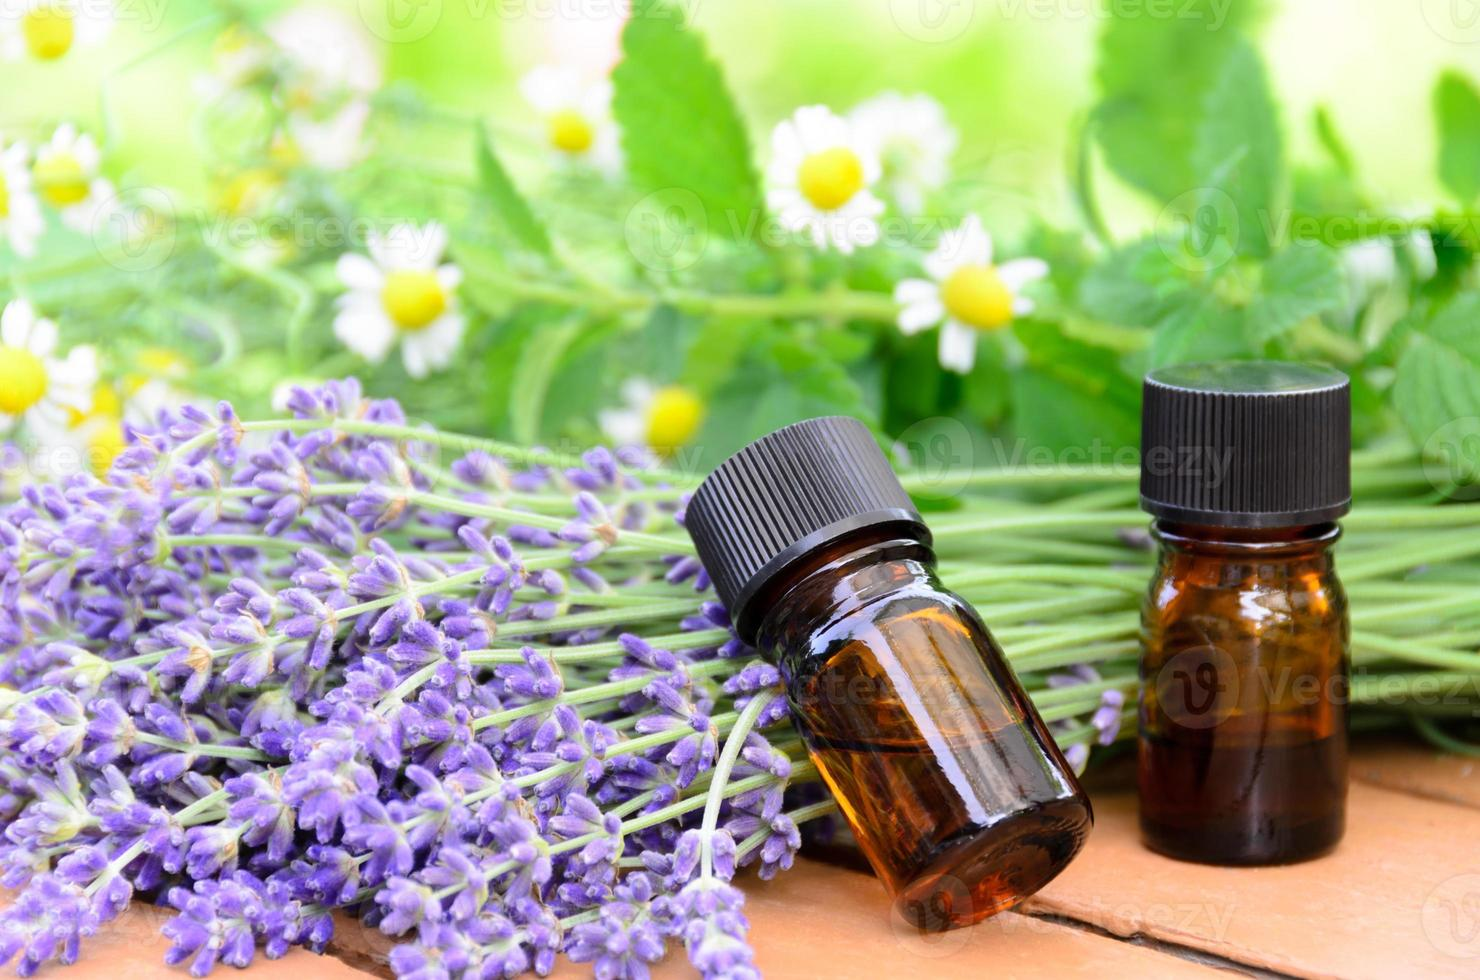 aromatherapy treatment with herbal flowers photo